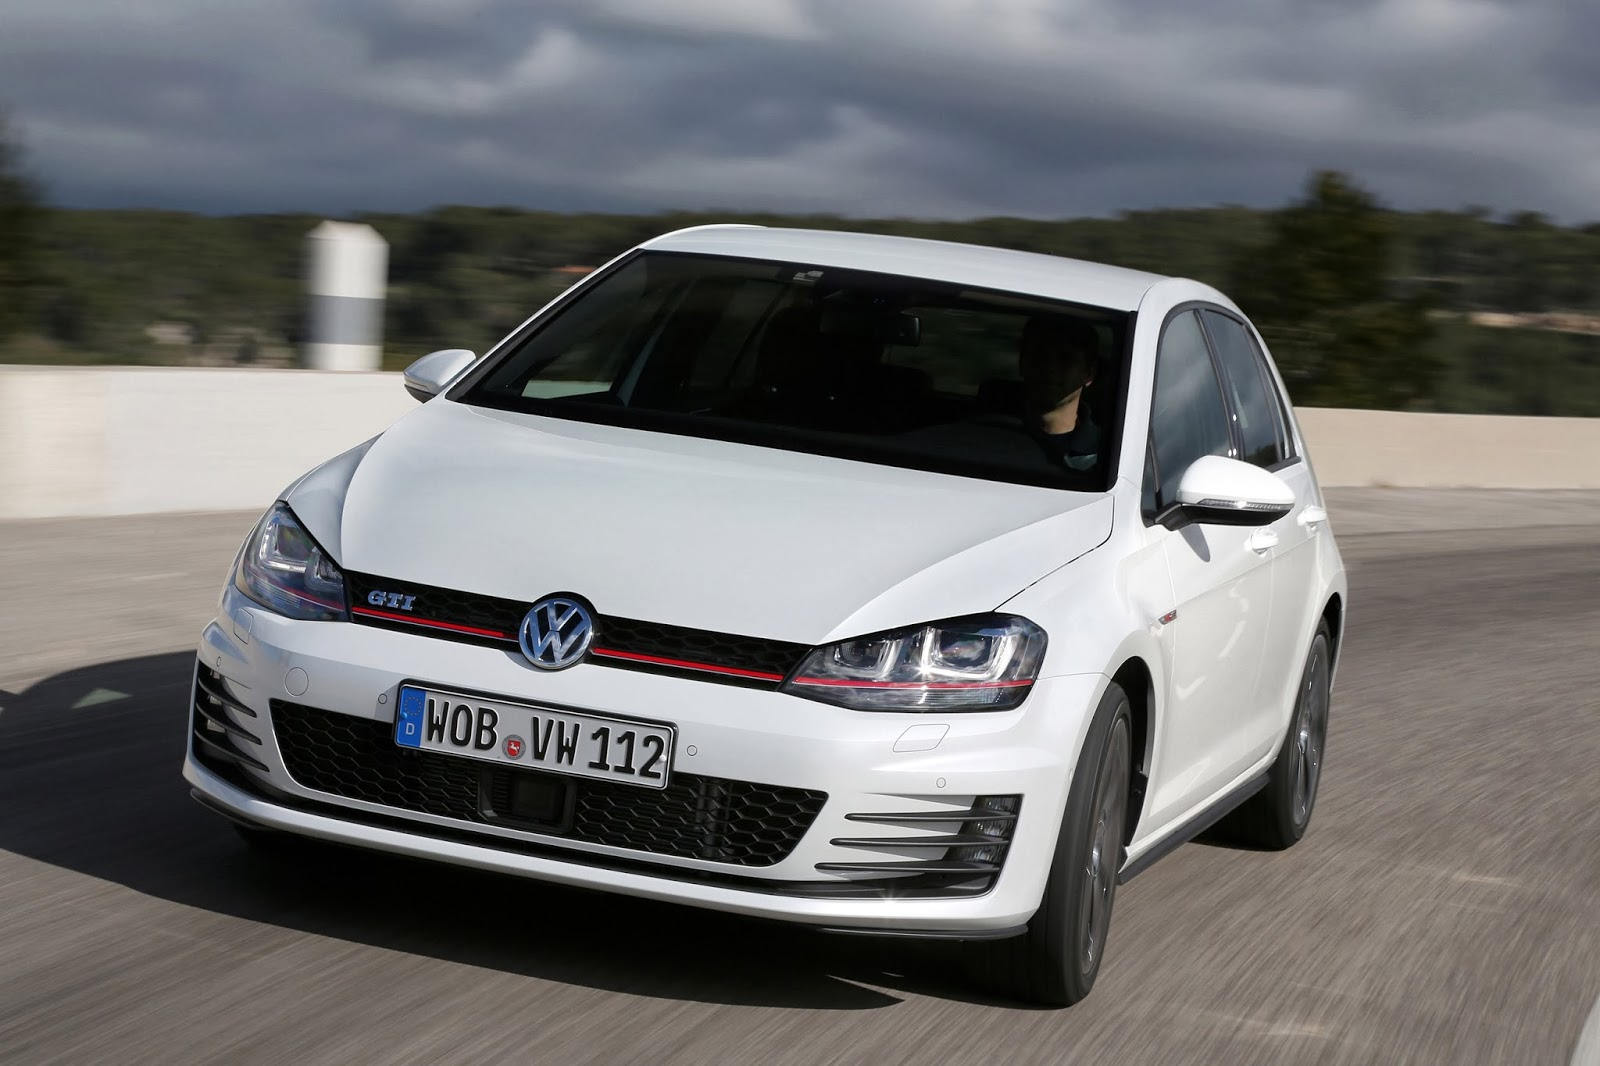 Free Download Volkswagen Golf Vii Gti Wallpapers 1600x1066 For Your Desktop Mobile Tablet Explore 73 Golf Gti Wallpaper 2015 Golf Gti Wallpaper